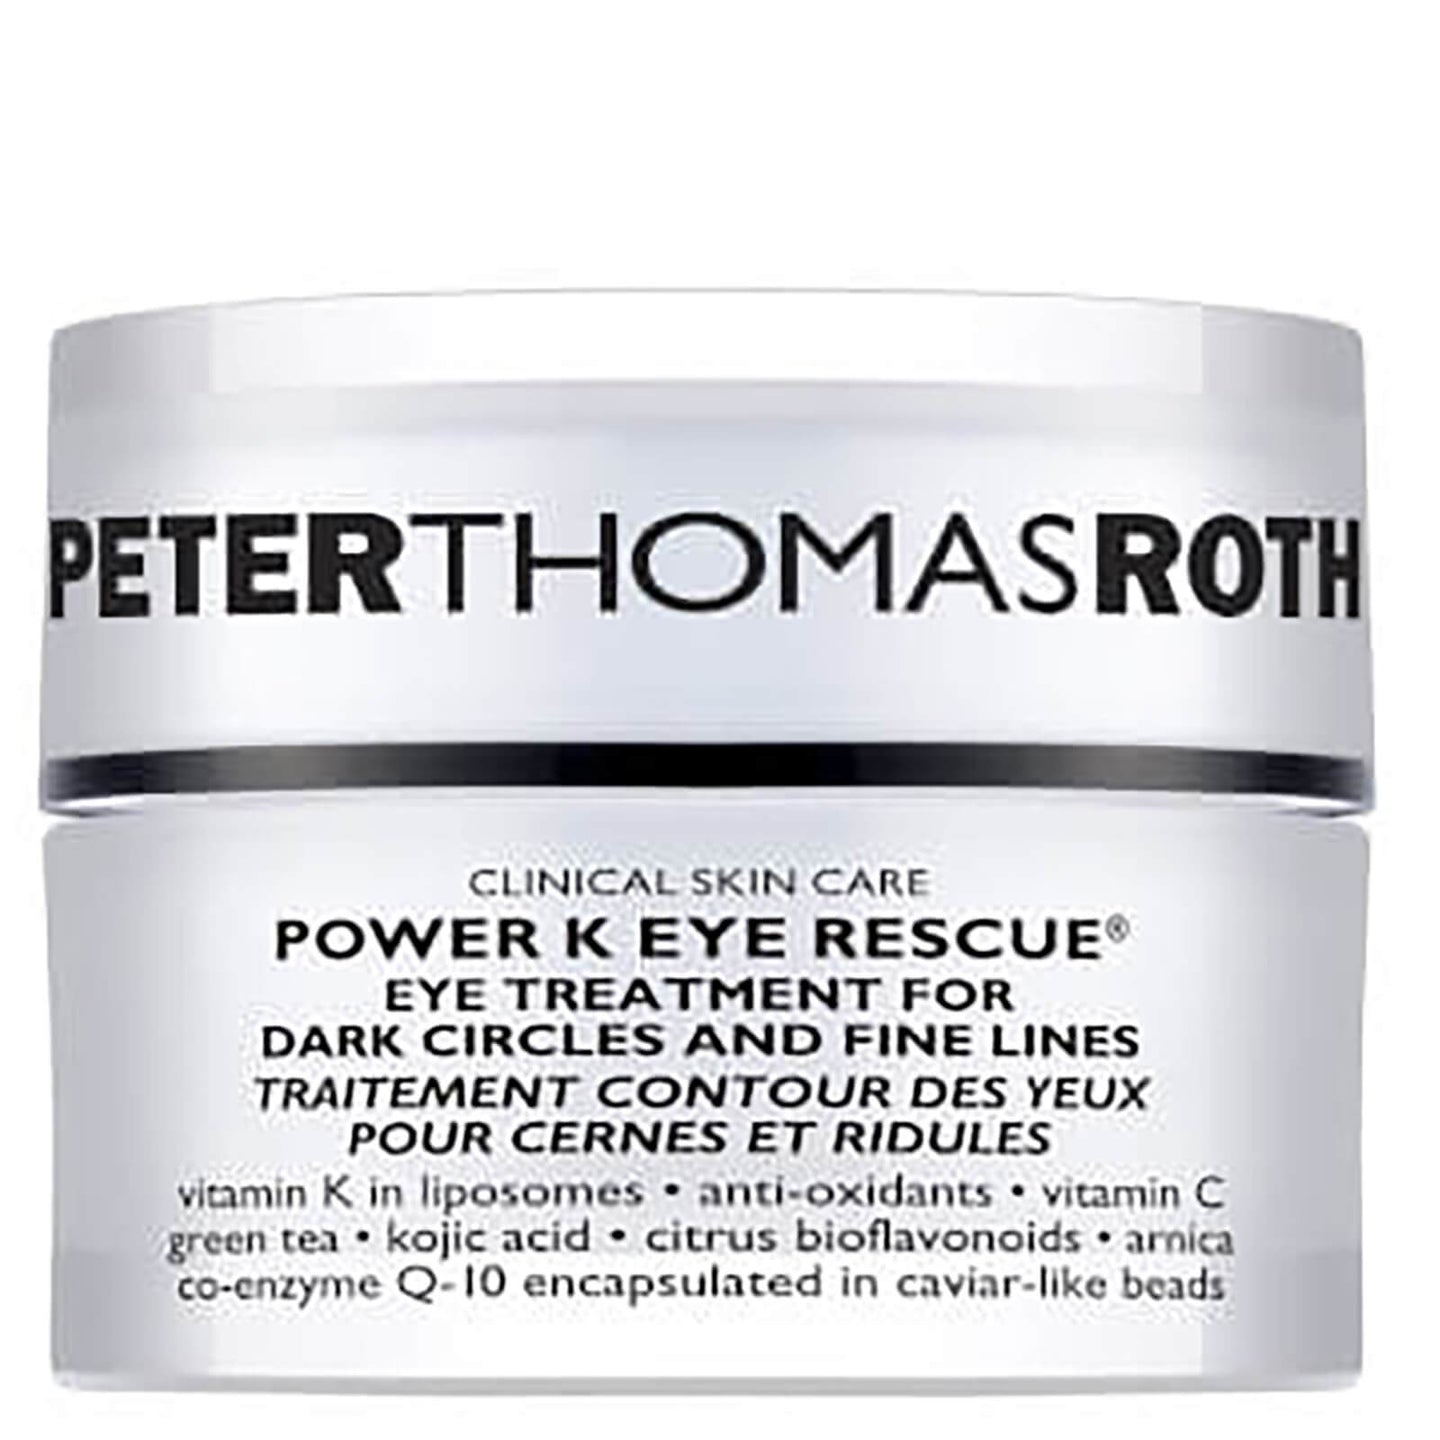 Peter Thomas Roth Power K Eye Rescue Eye Treatment For Dark Circles and Fine Lines